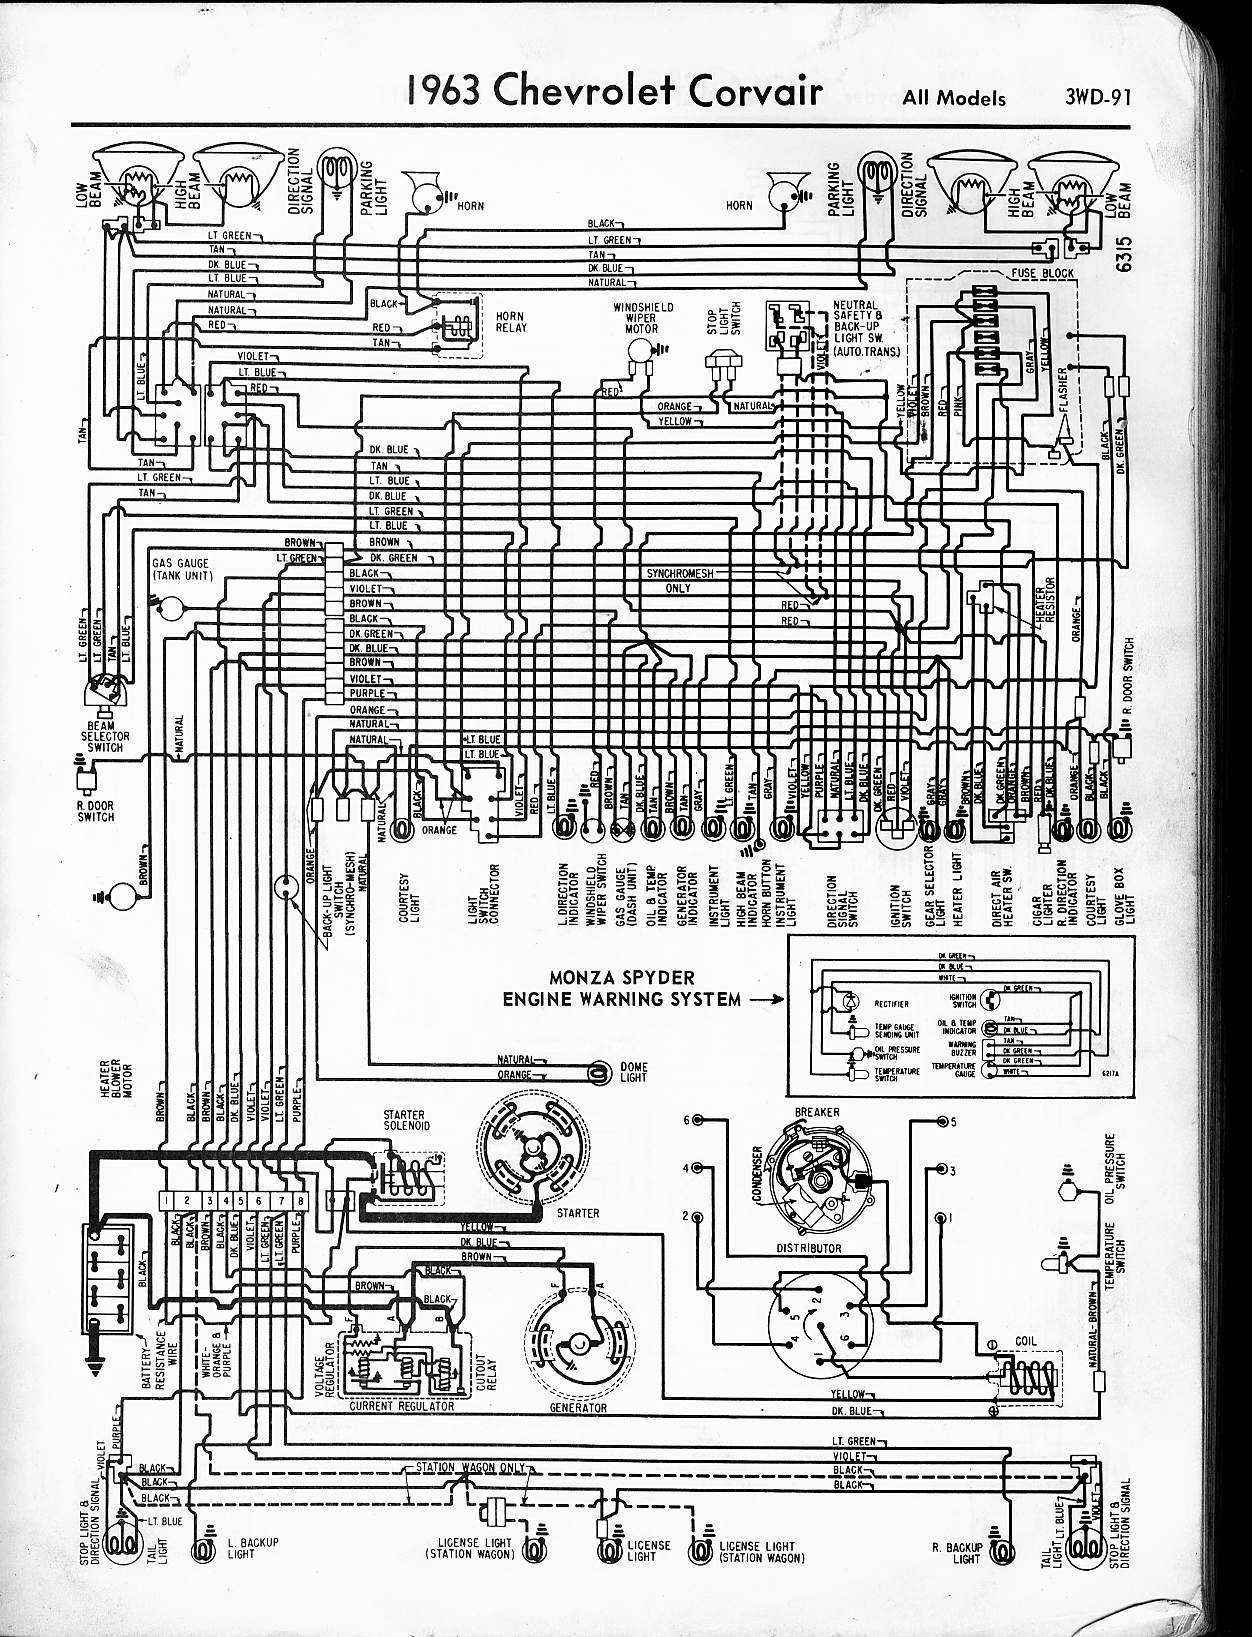 1963 Corvair Wiring Diagram - Wiring Diagram •